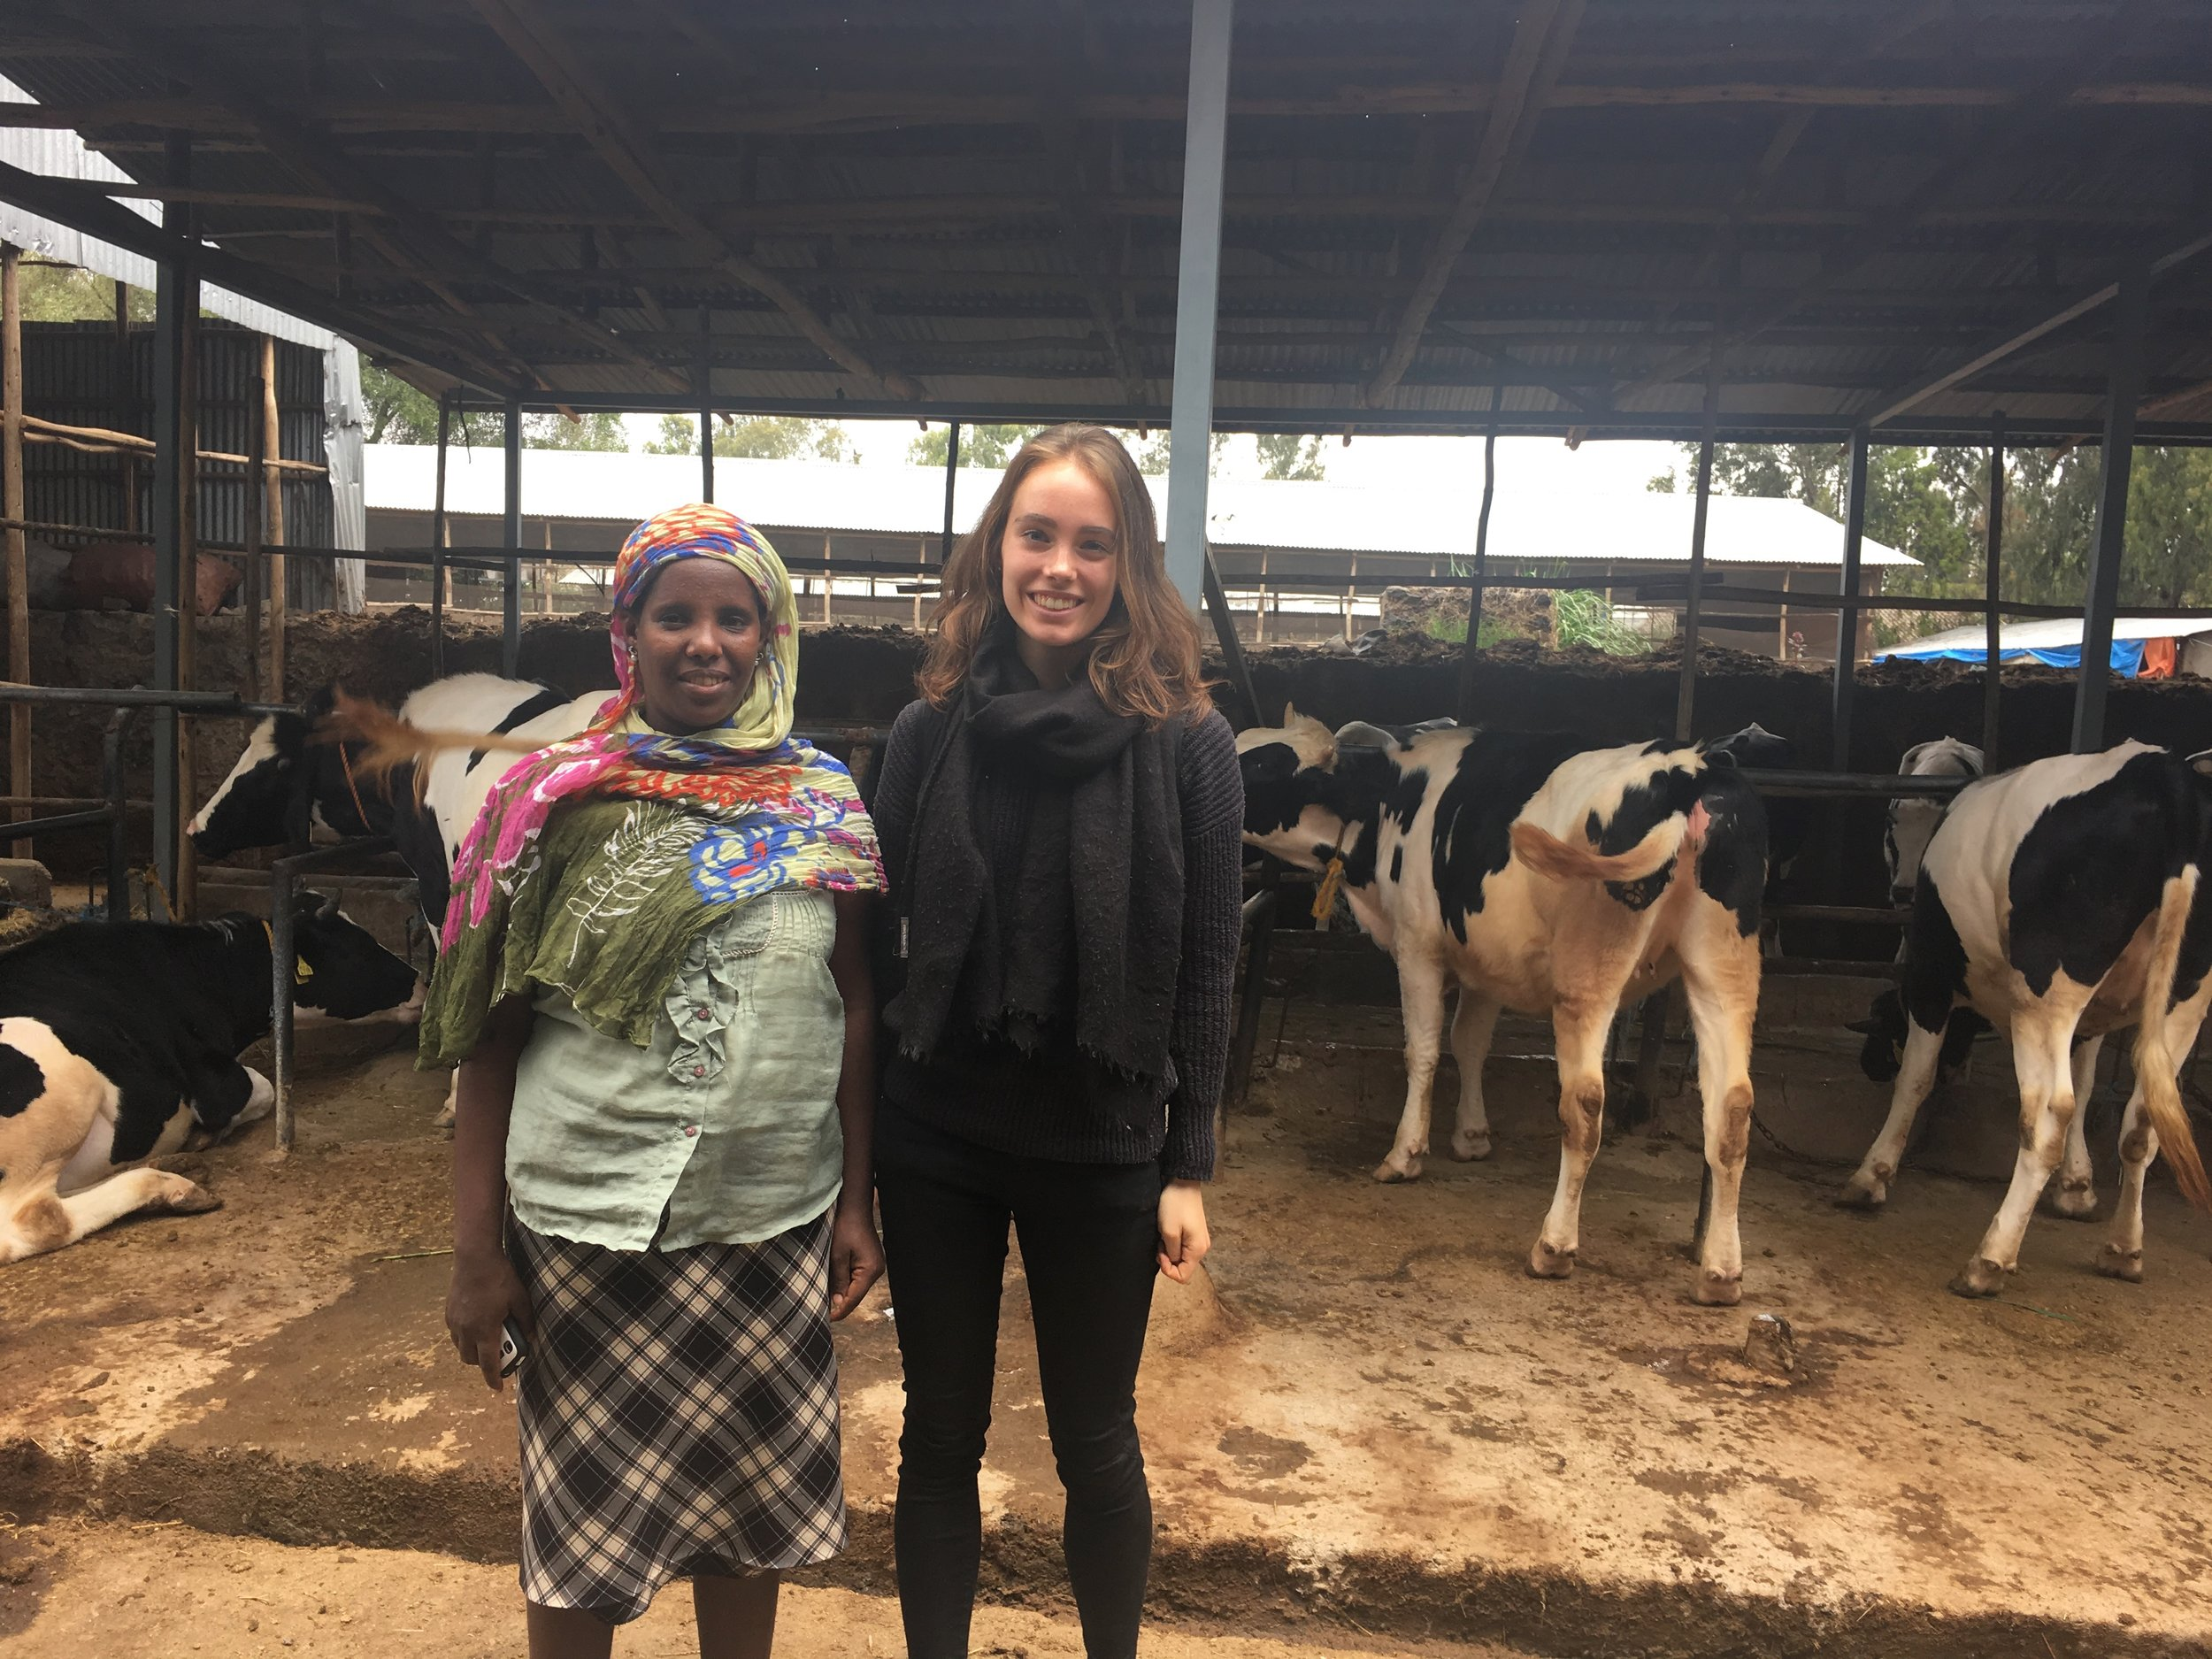 With a commercial dairy farmer in Debre Zeyit, a town established on the outskirts of Addis Ababa.